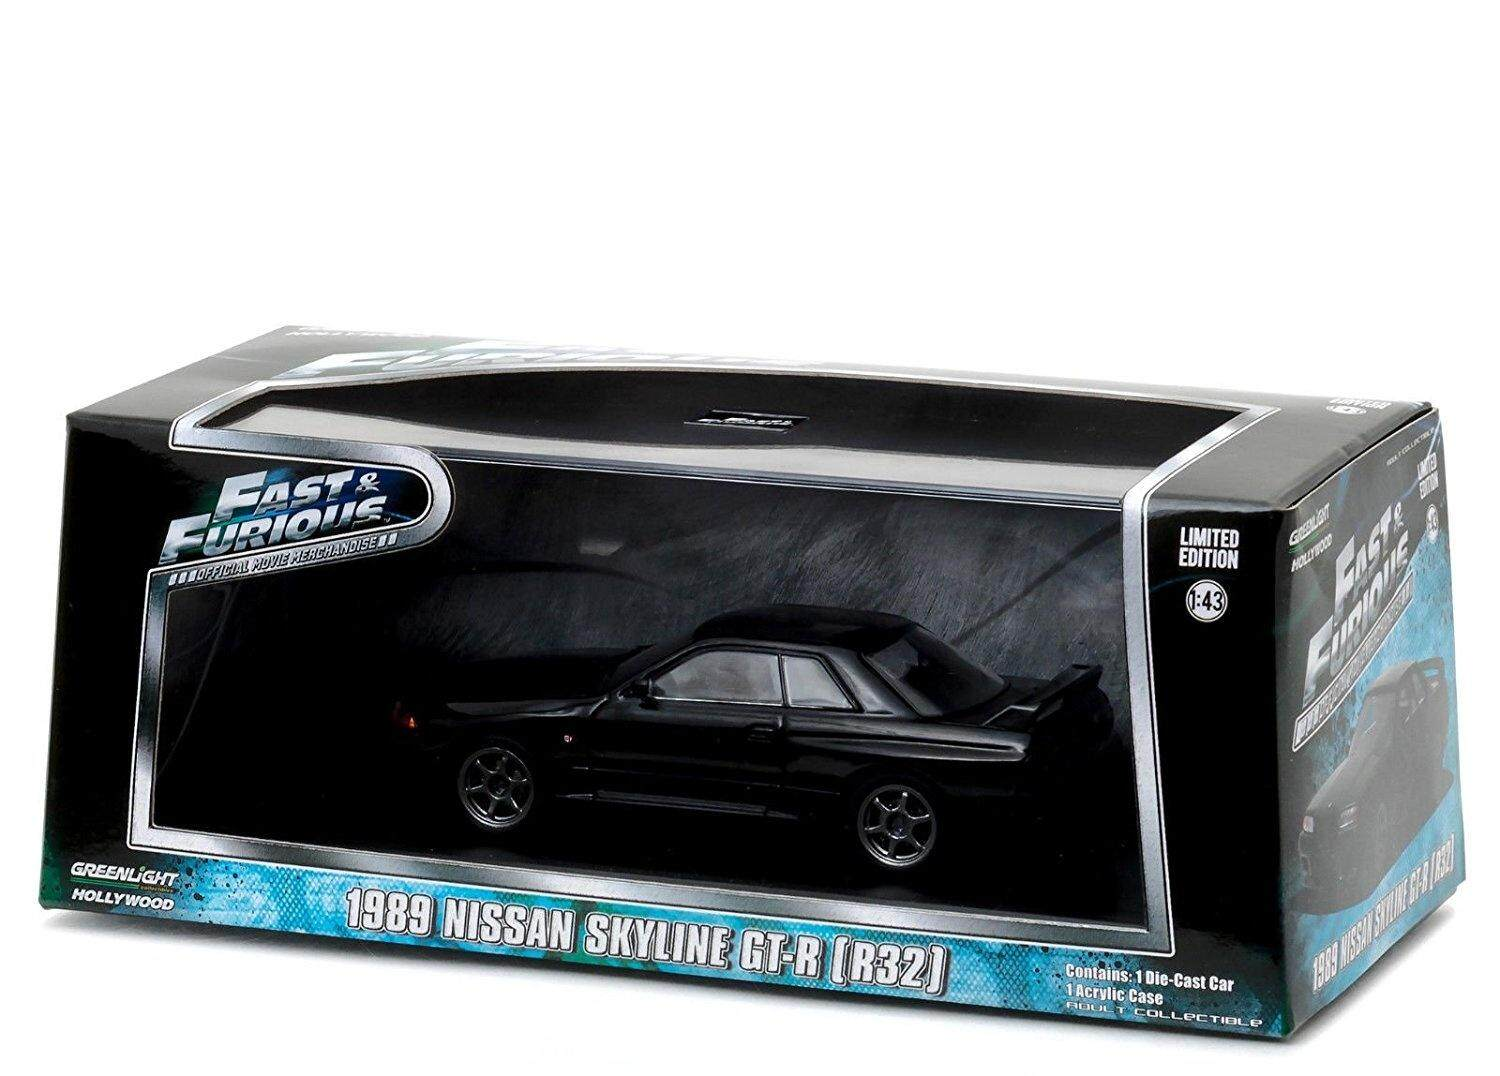 1989 fits Nissan Skyline GT-R (R32) Black Fast and Furious